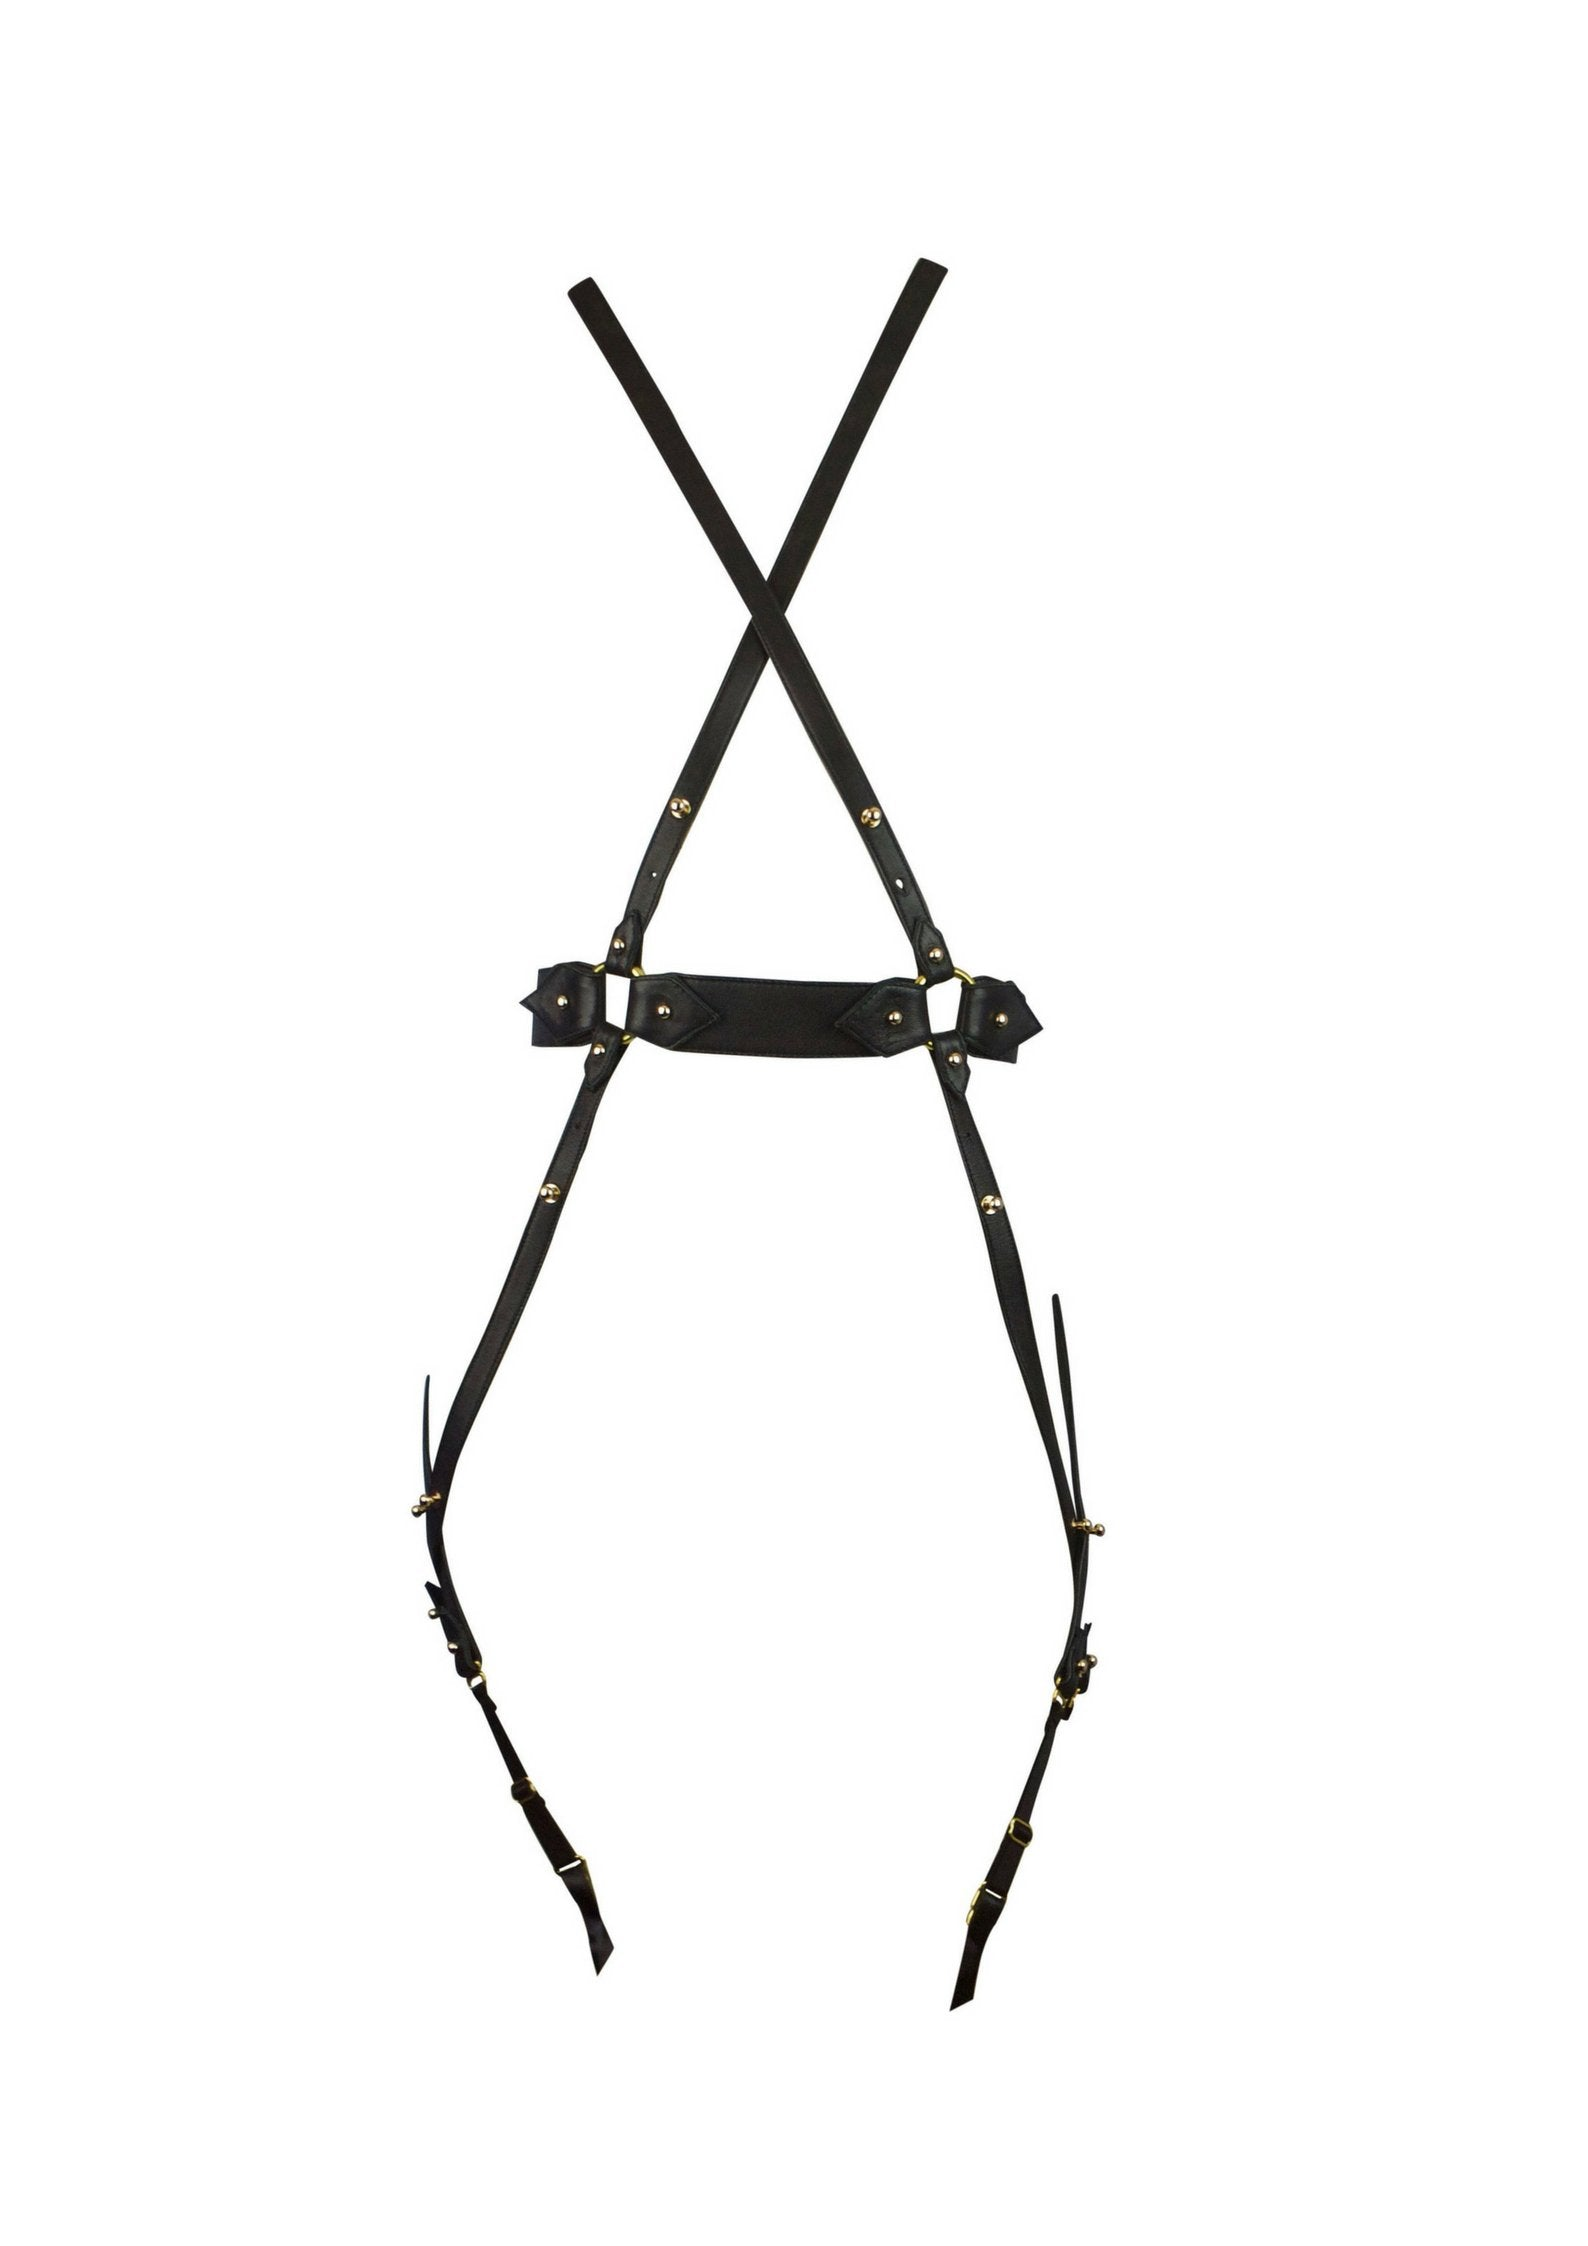 Lola 'n' Leather harness - Available now